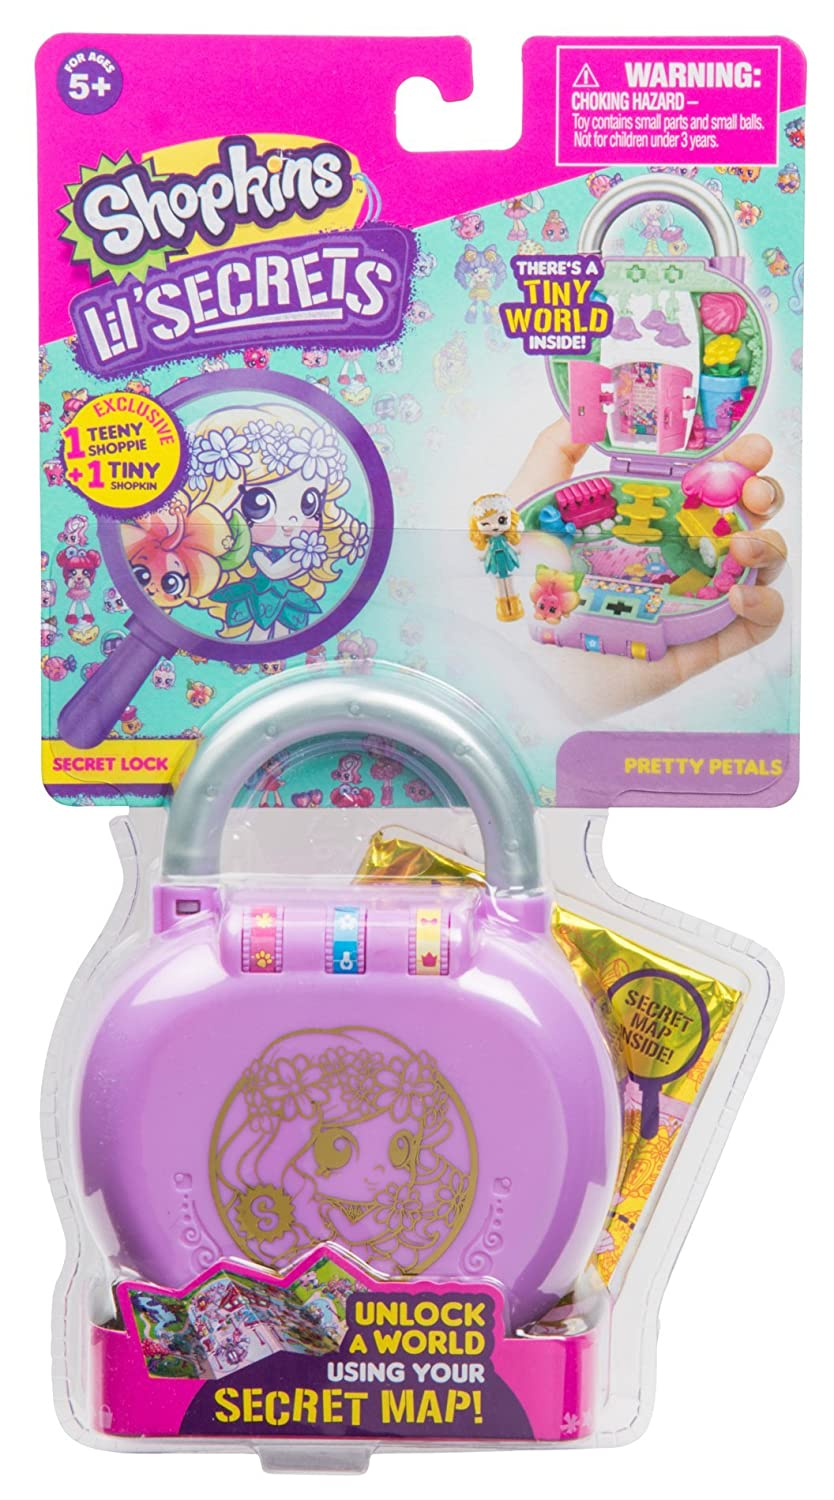 2f0164eca7d Amazon.com  Shopkins Lil  Secrets Secret Lock - Pretty Petals Flower Shop   Toys   Games